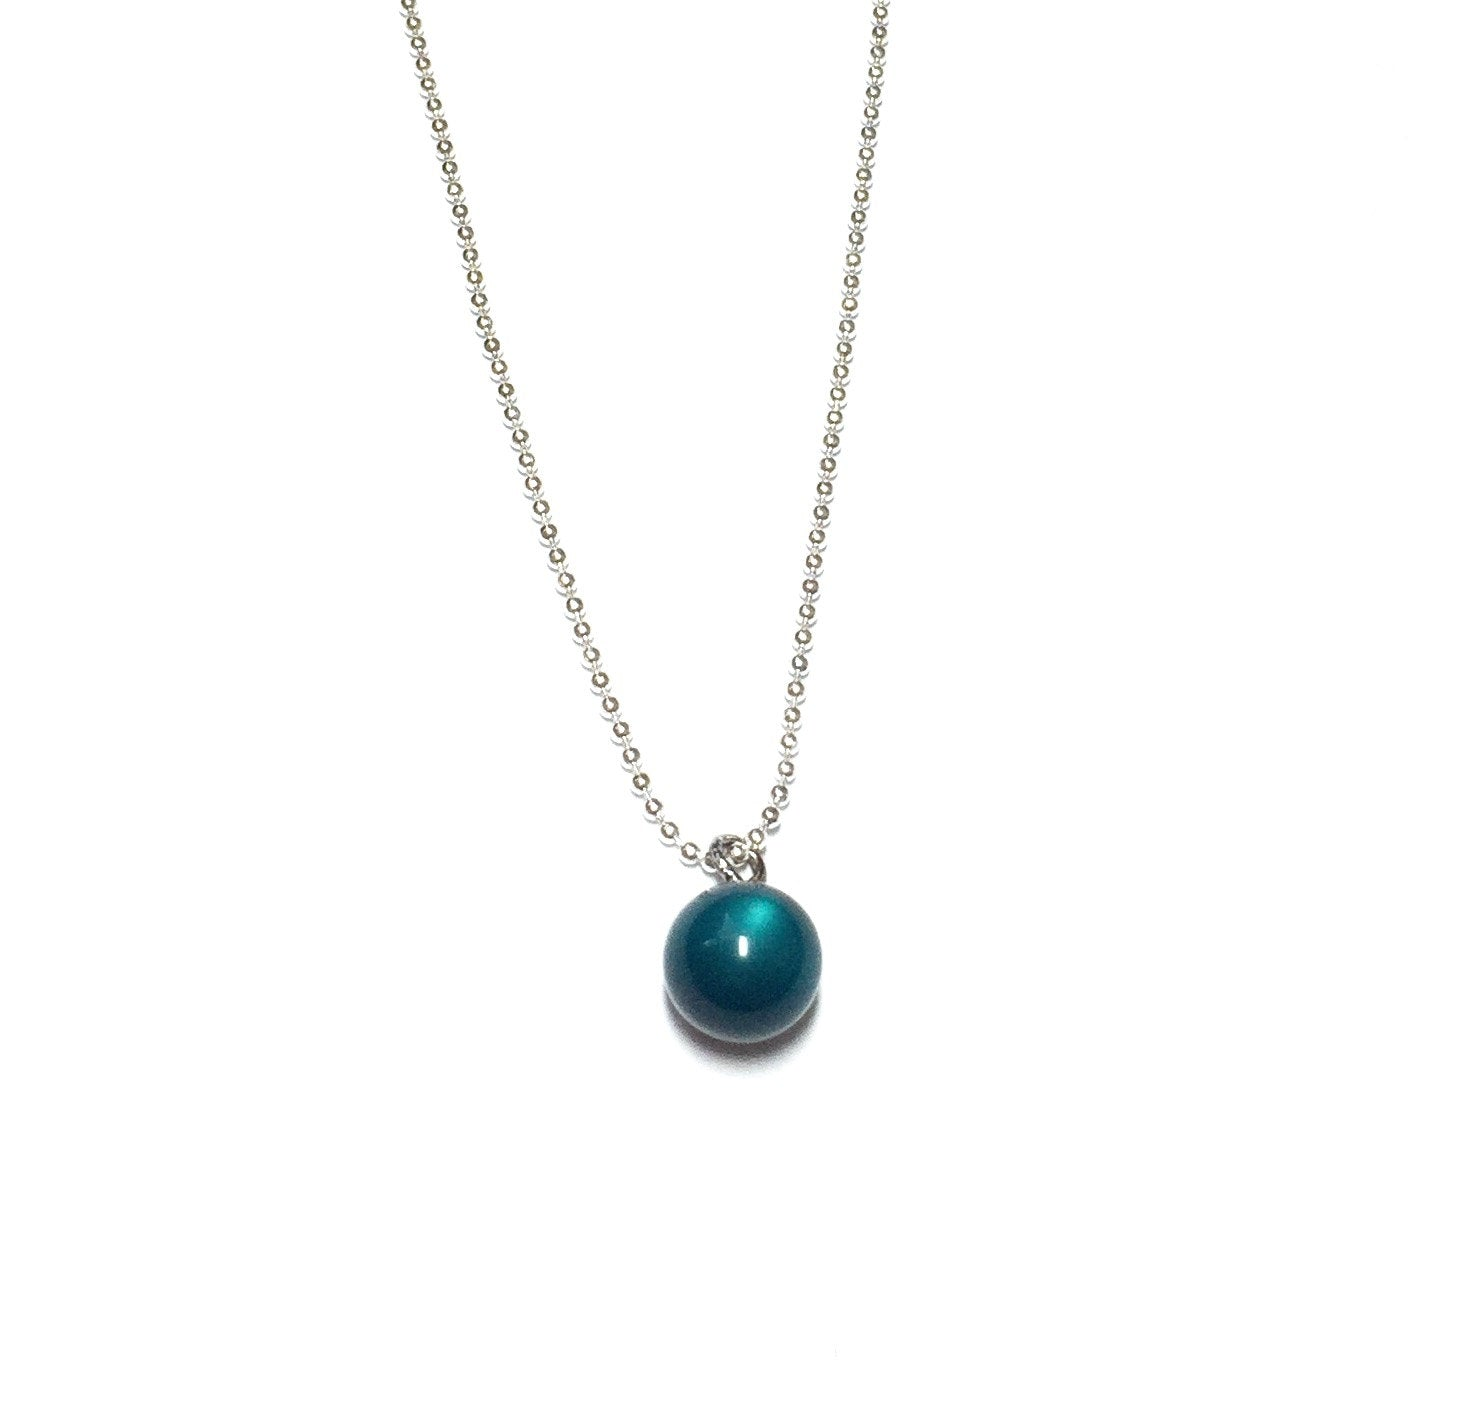 teal moonglow chain necklace